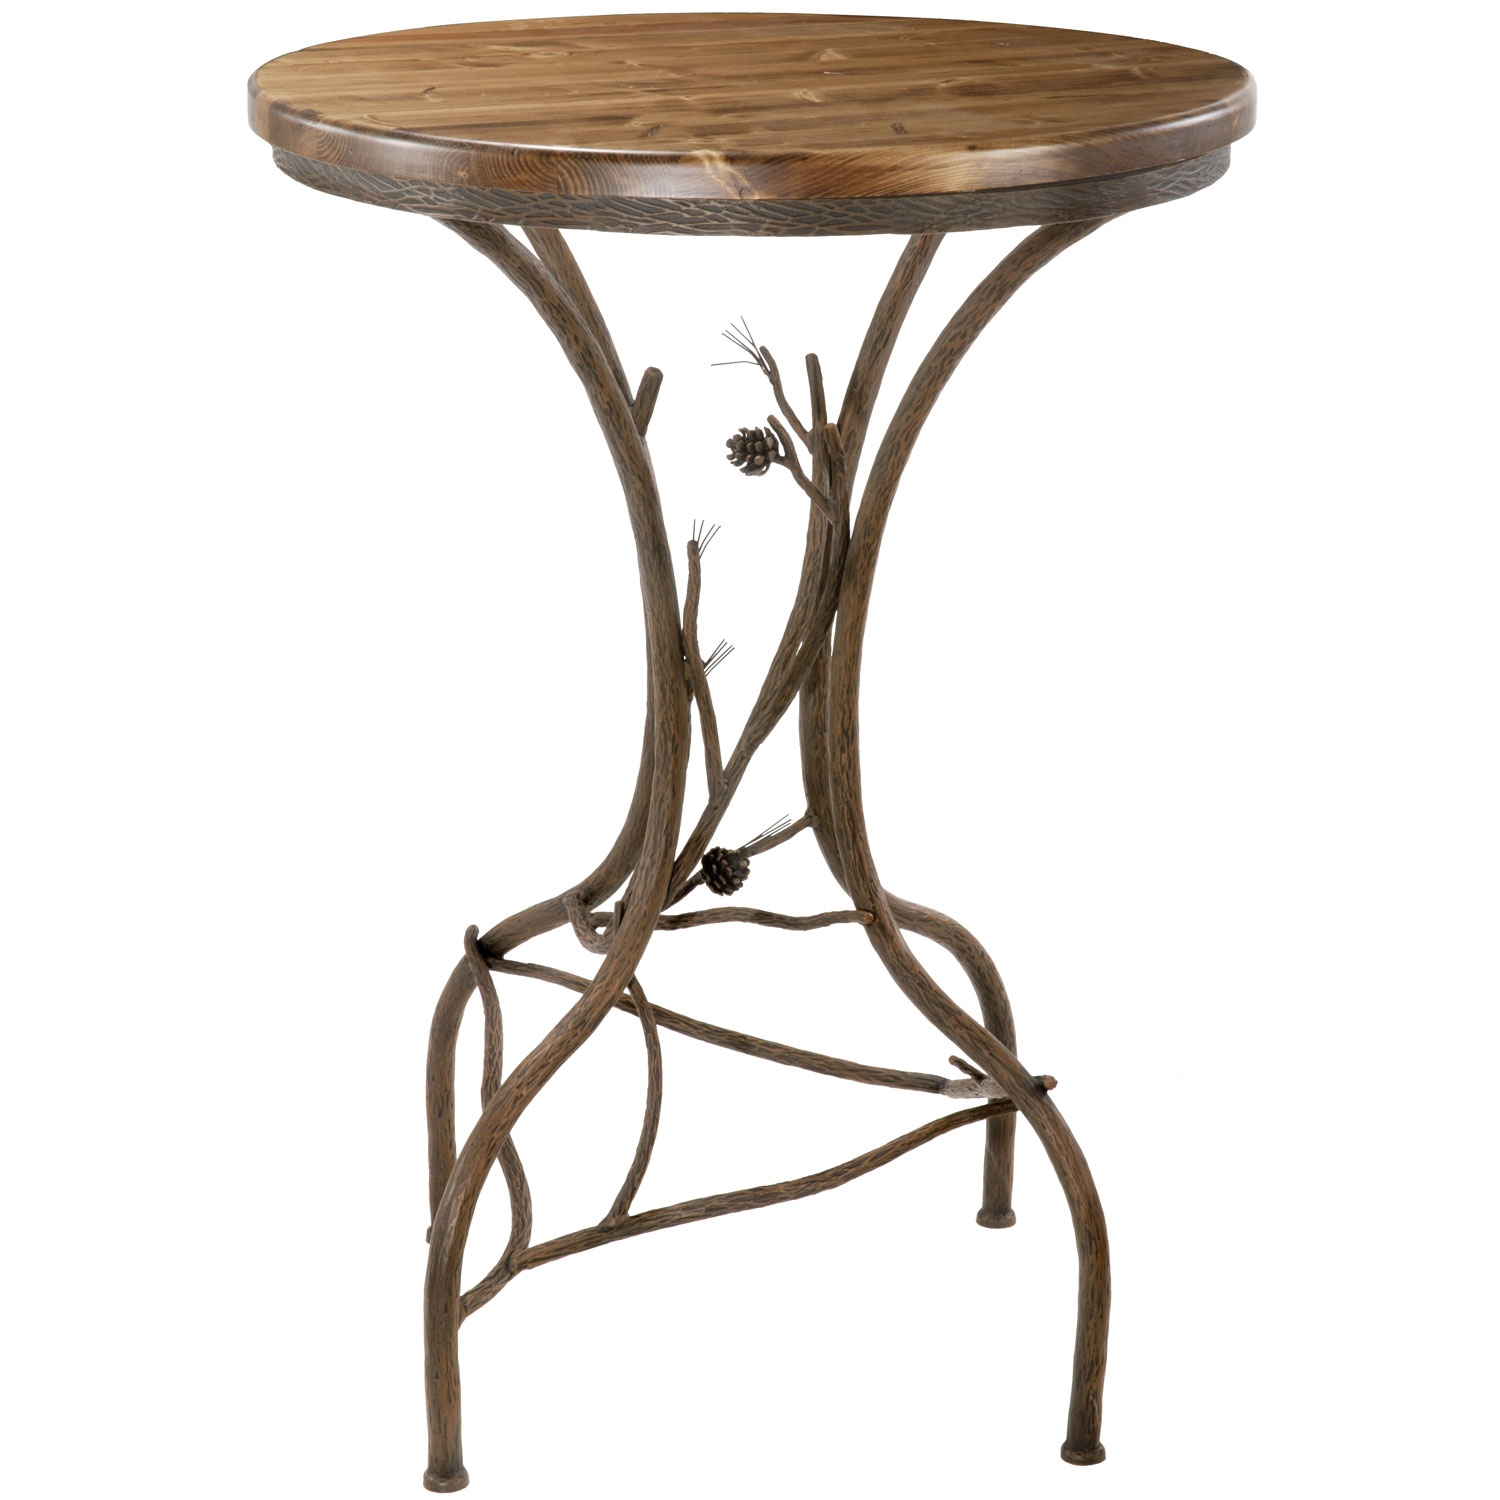 Awesome Wrought Iron Counter Height Table With 30 Round Top Download Free Architecture Designs Embacsunscenecom